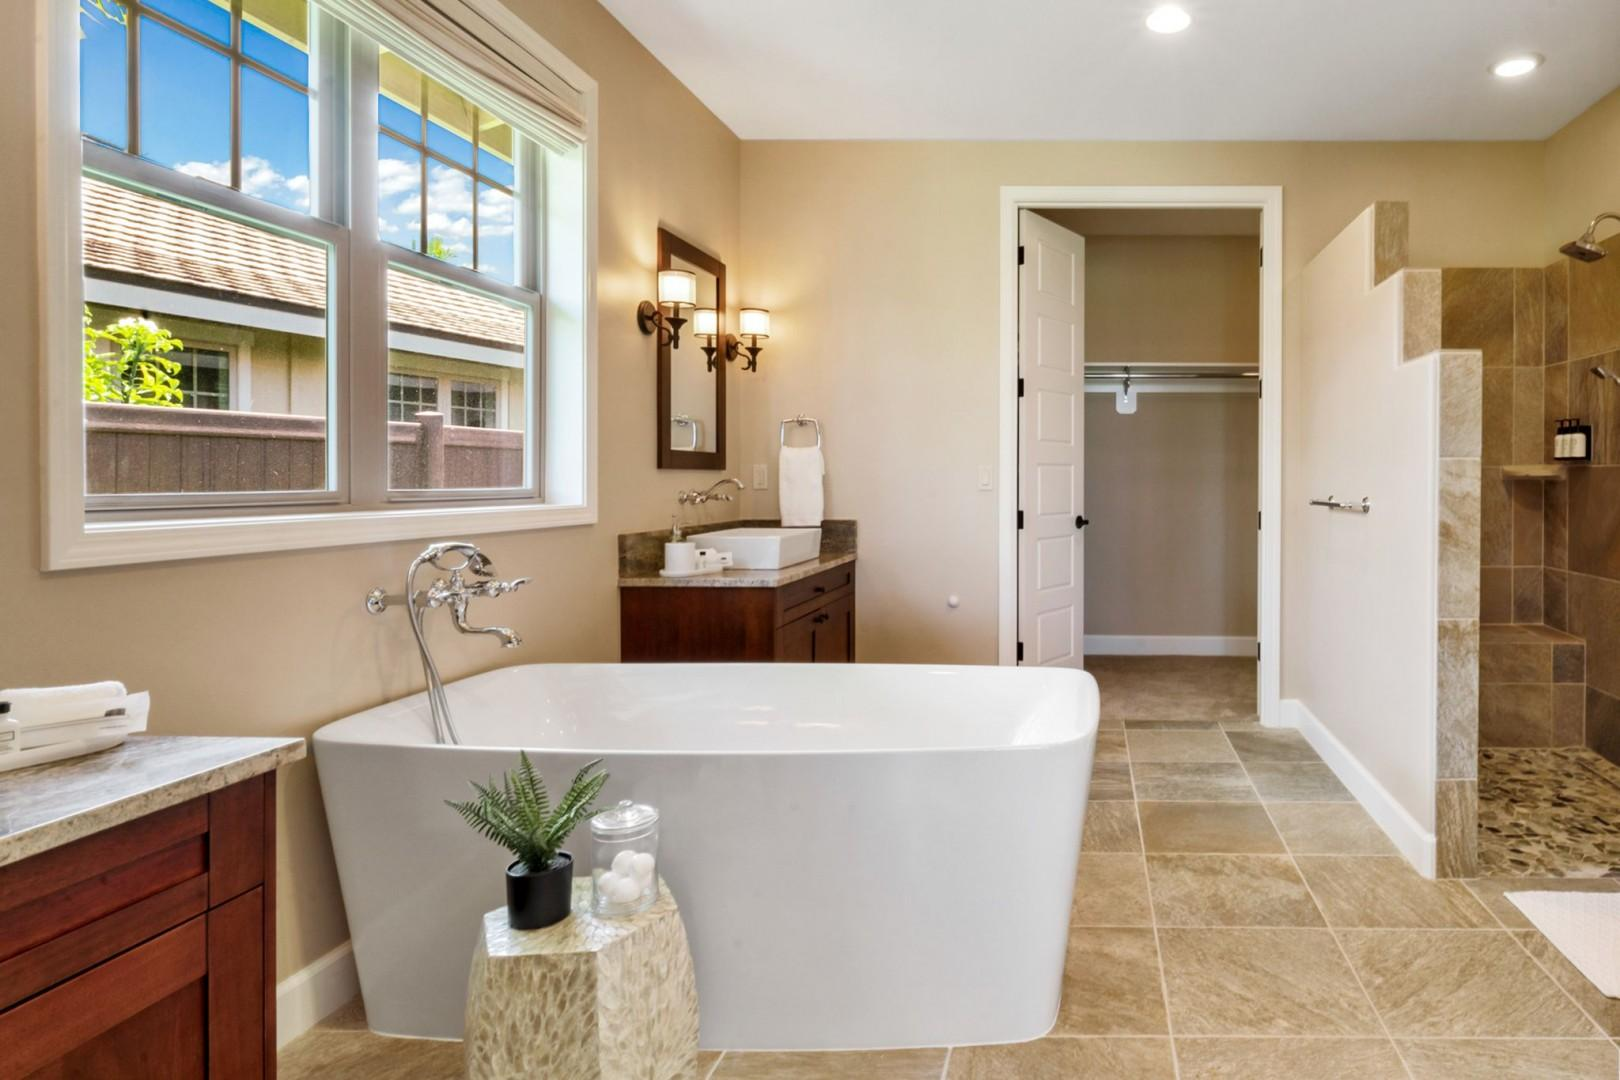 Ensuite equipped with dual vanities, soaking tub, walk in shower and closet